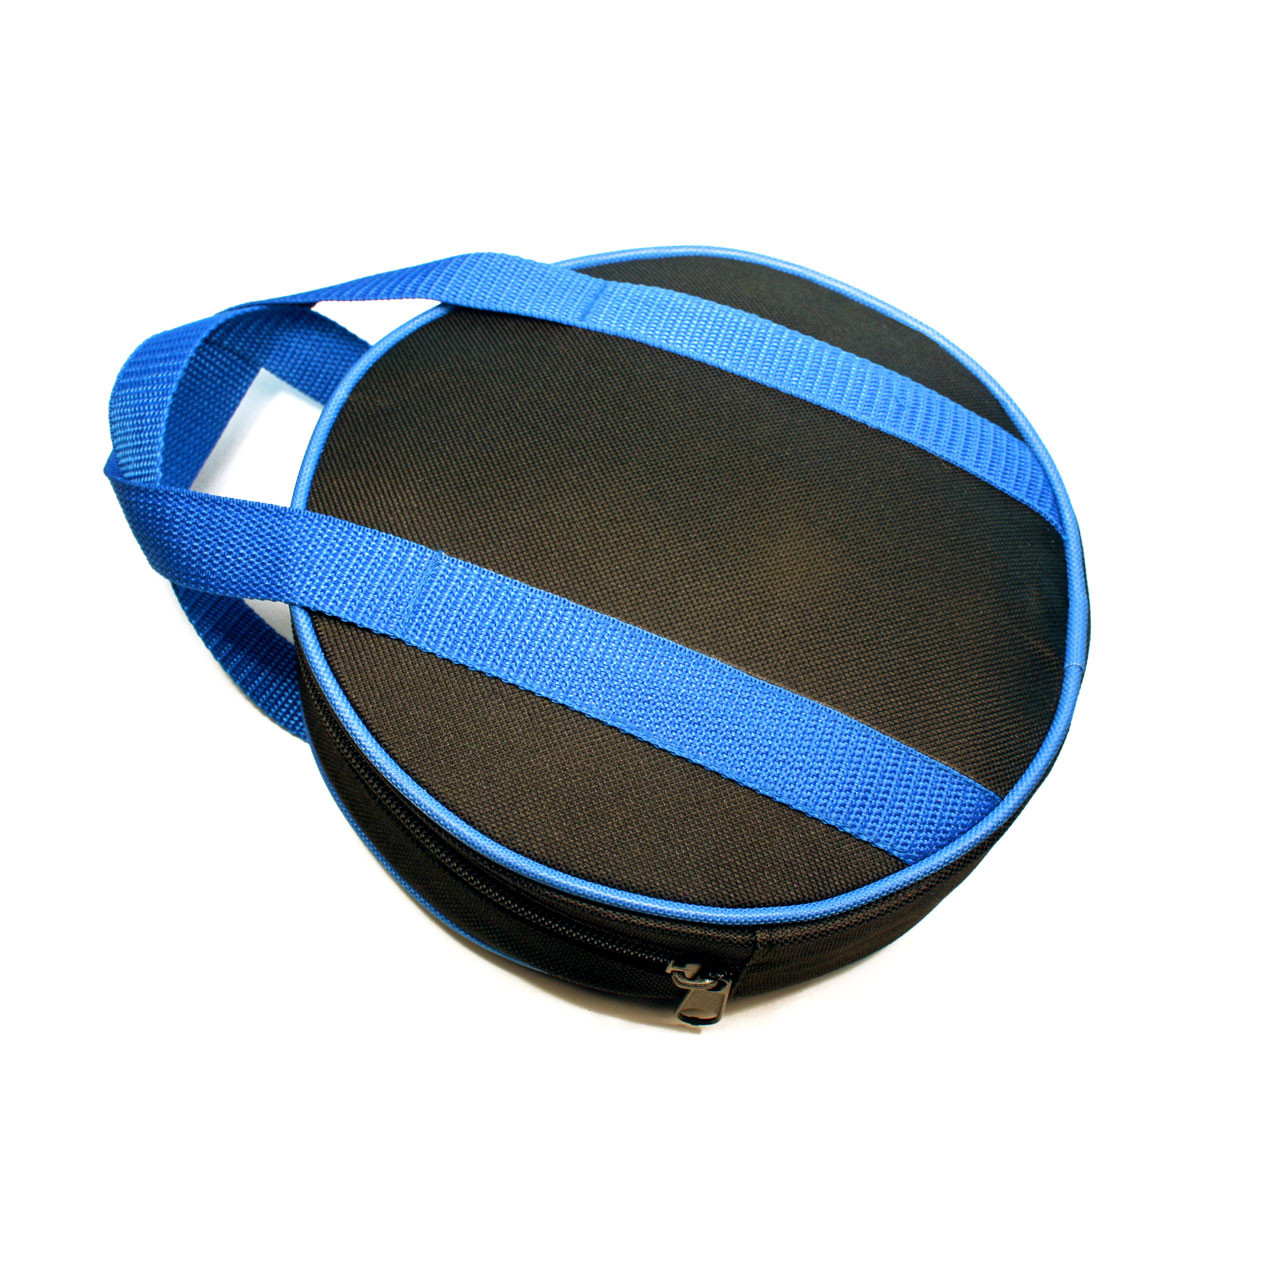 Includes a durable nylon canvas jumper cable bag for carrying and storing